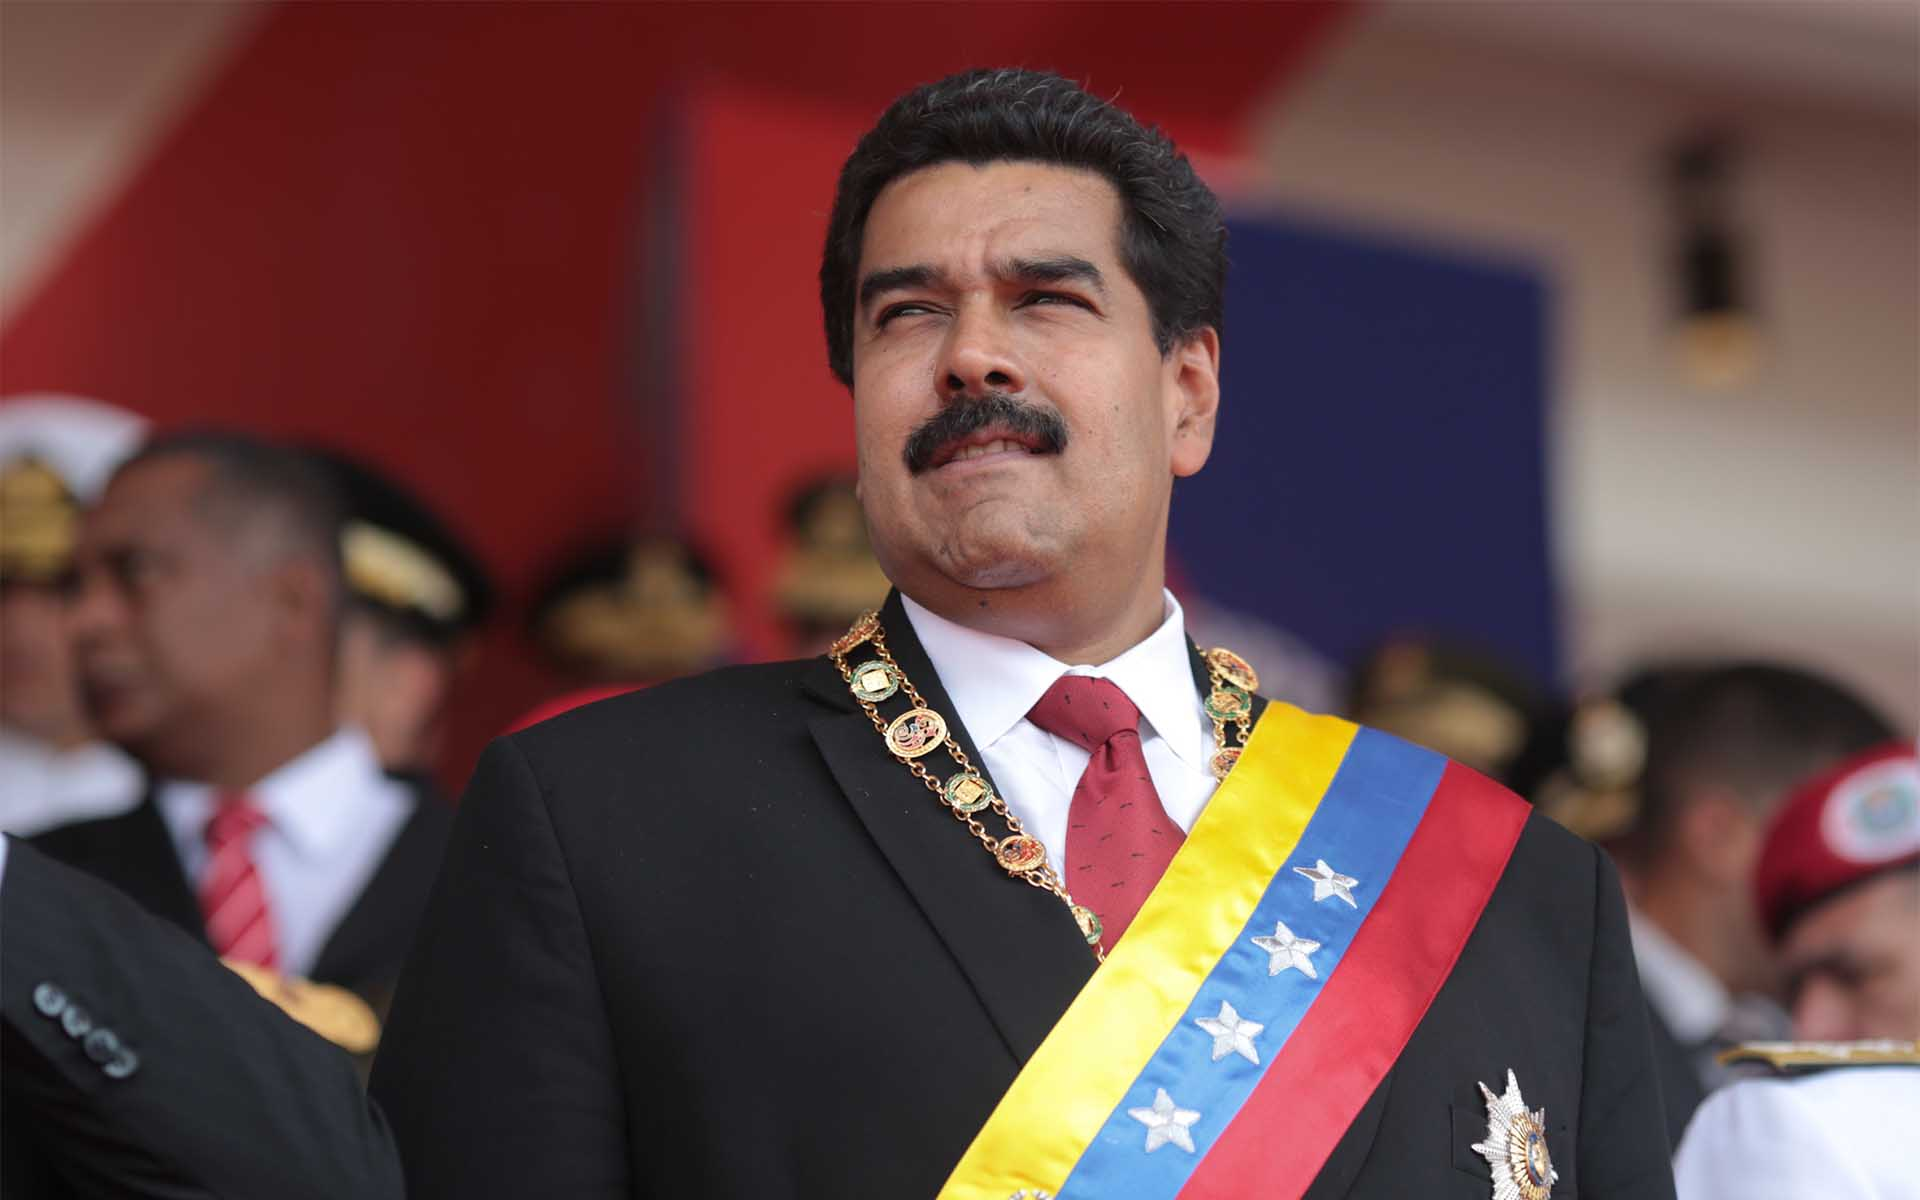 Venezuelan Cryptocurrency Petro Banned by Trump Executive Order